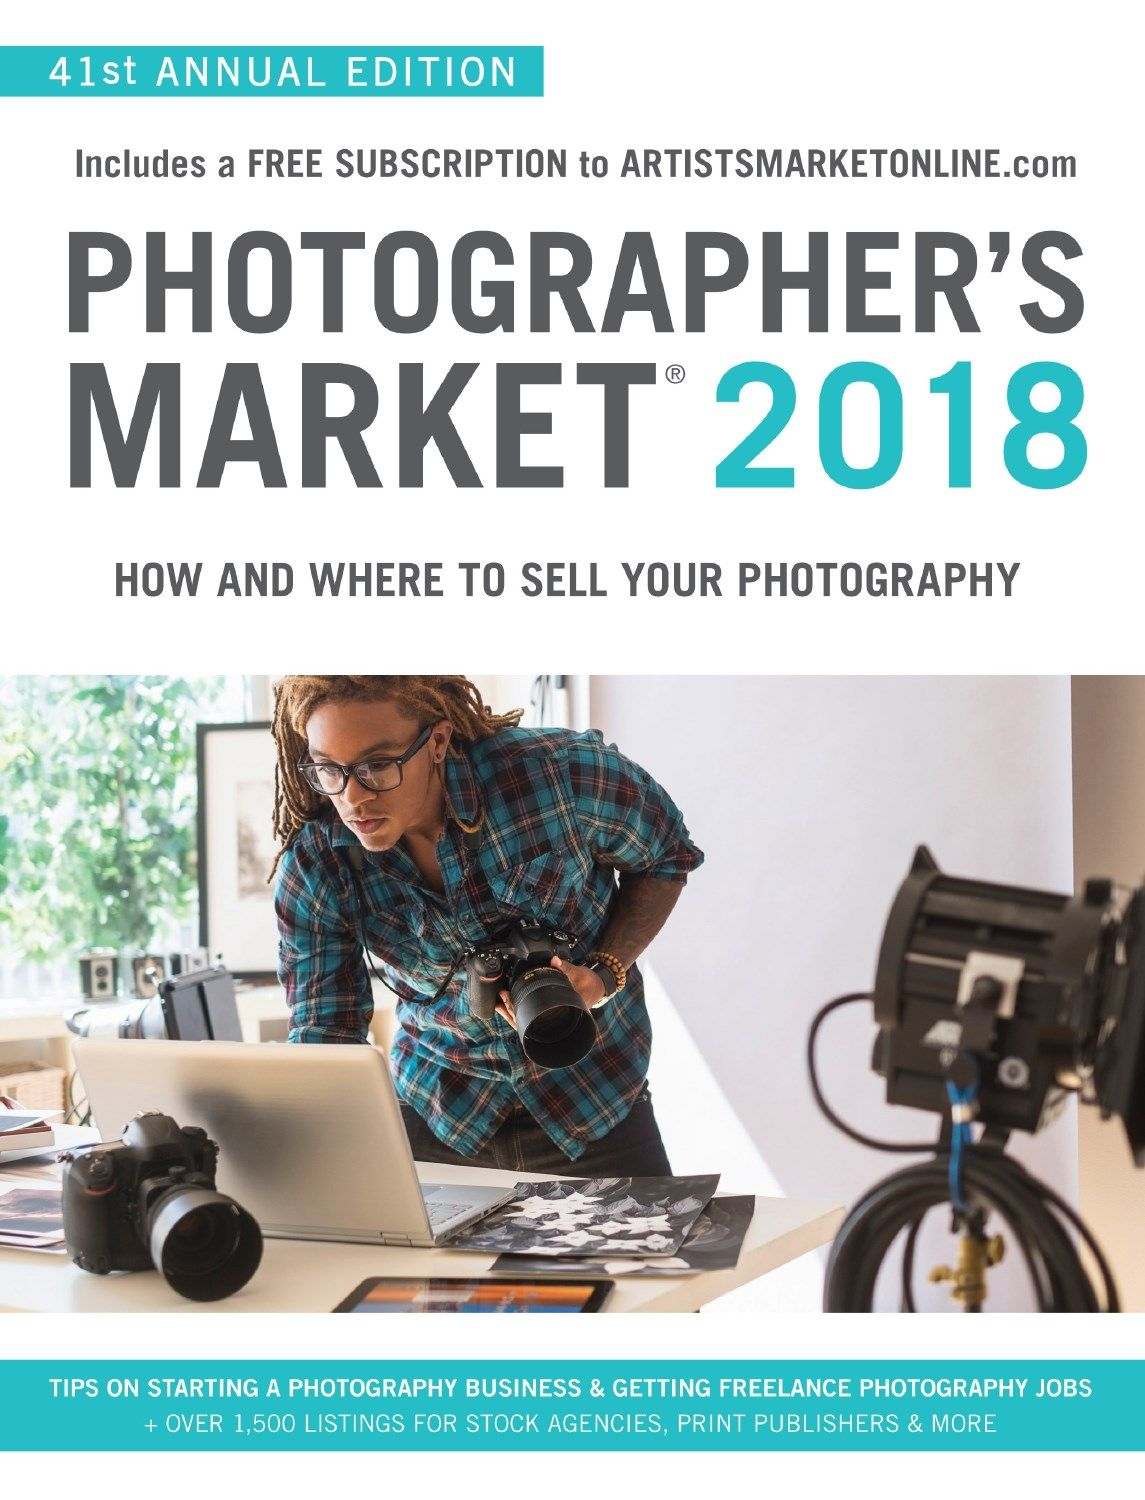 Photographers market 2018 by noel rivera photography getpublished photographers market 2018 by noel rivera photography getpublished greeting card companiesphoto contestprofessional kristyandbryce Image collections